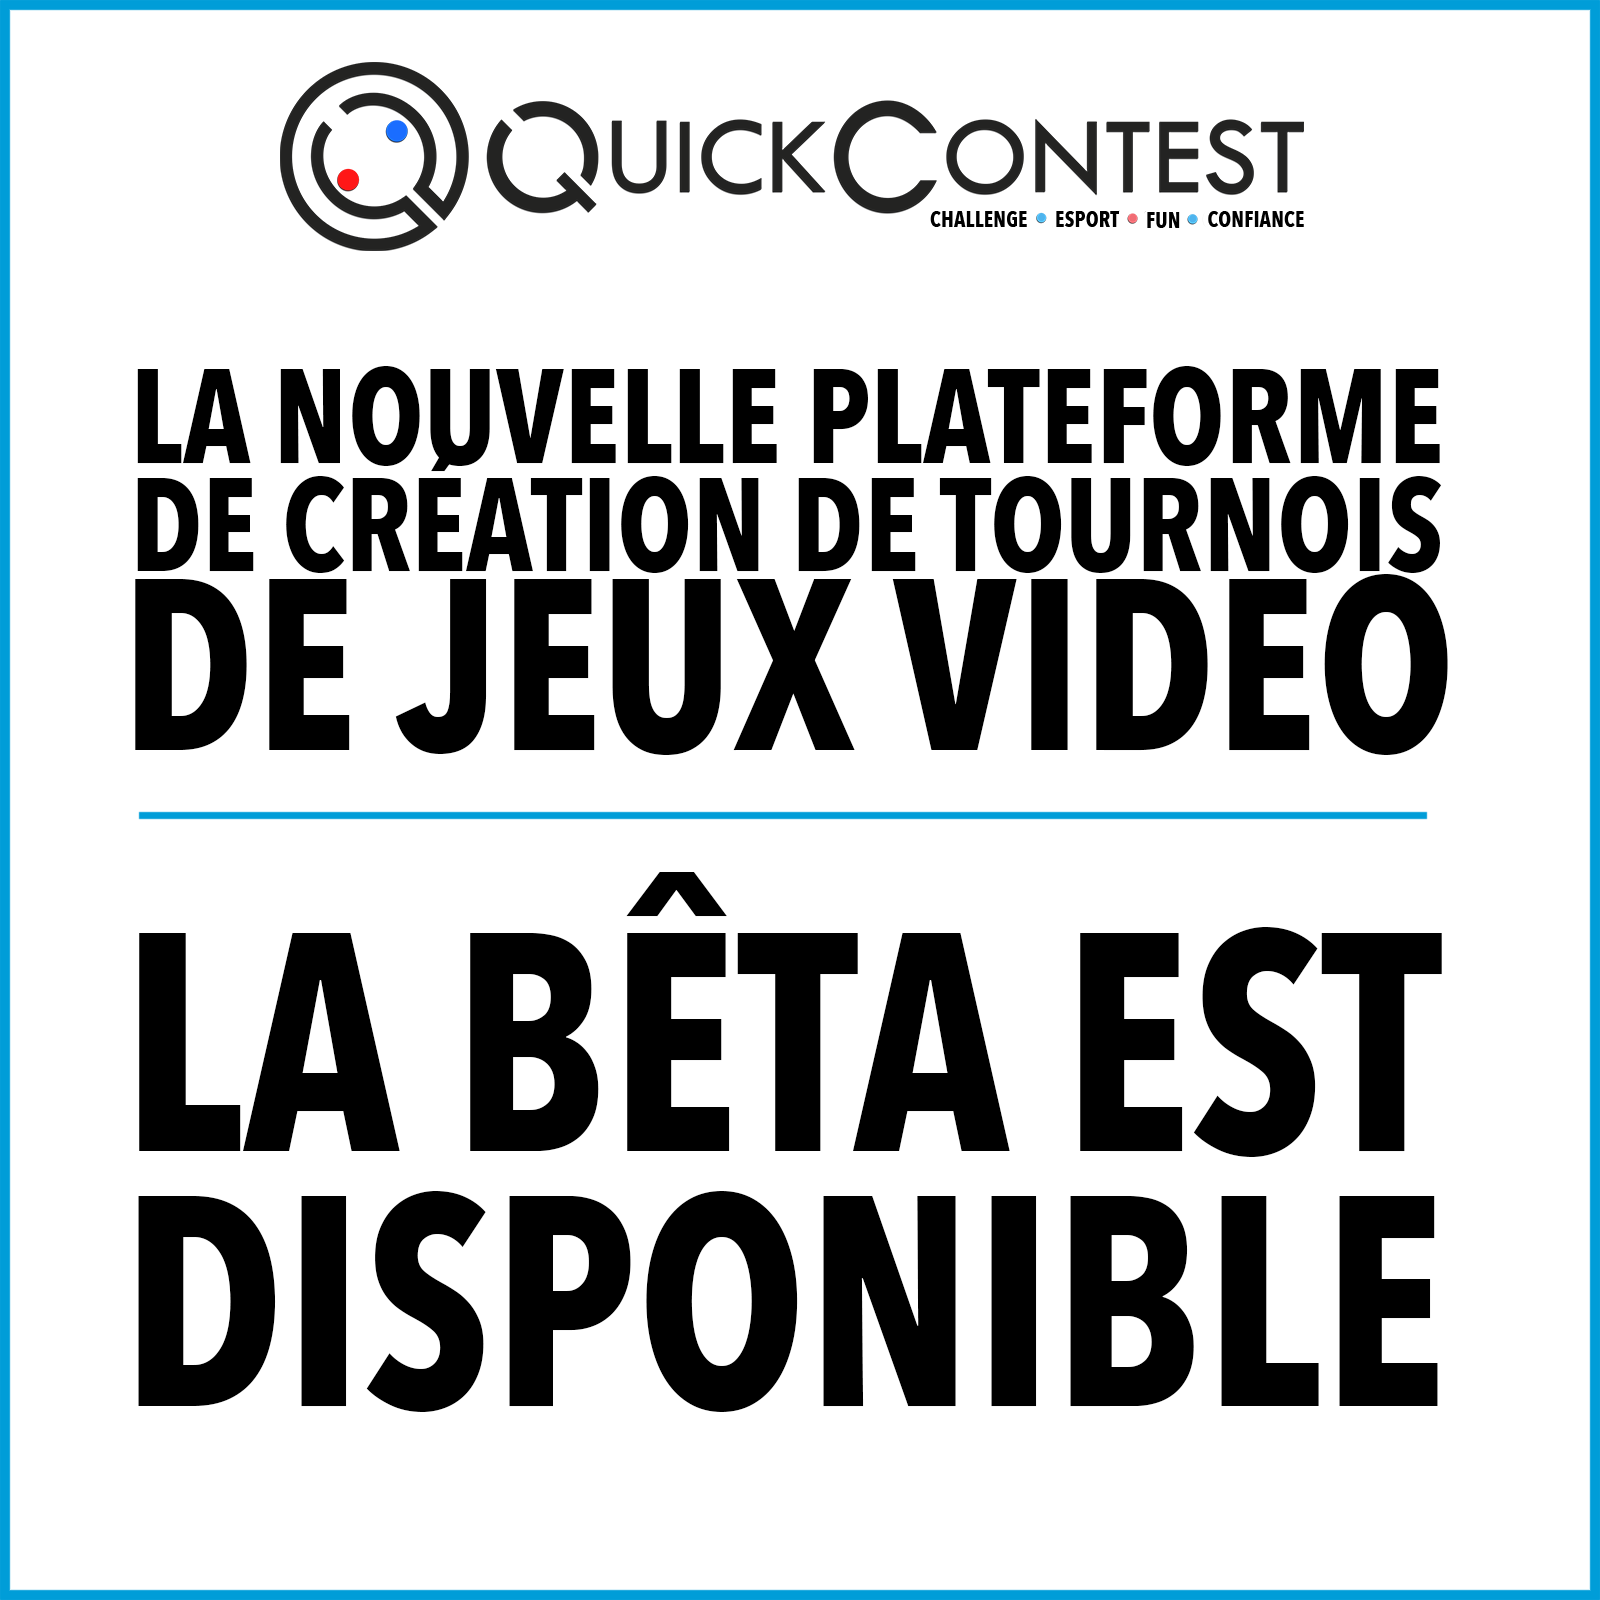 QuickContest